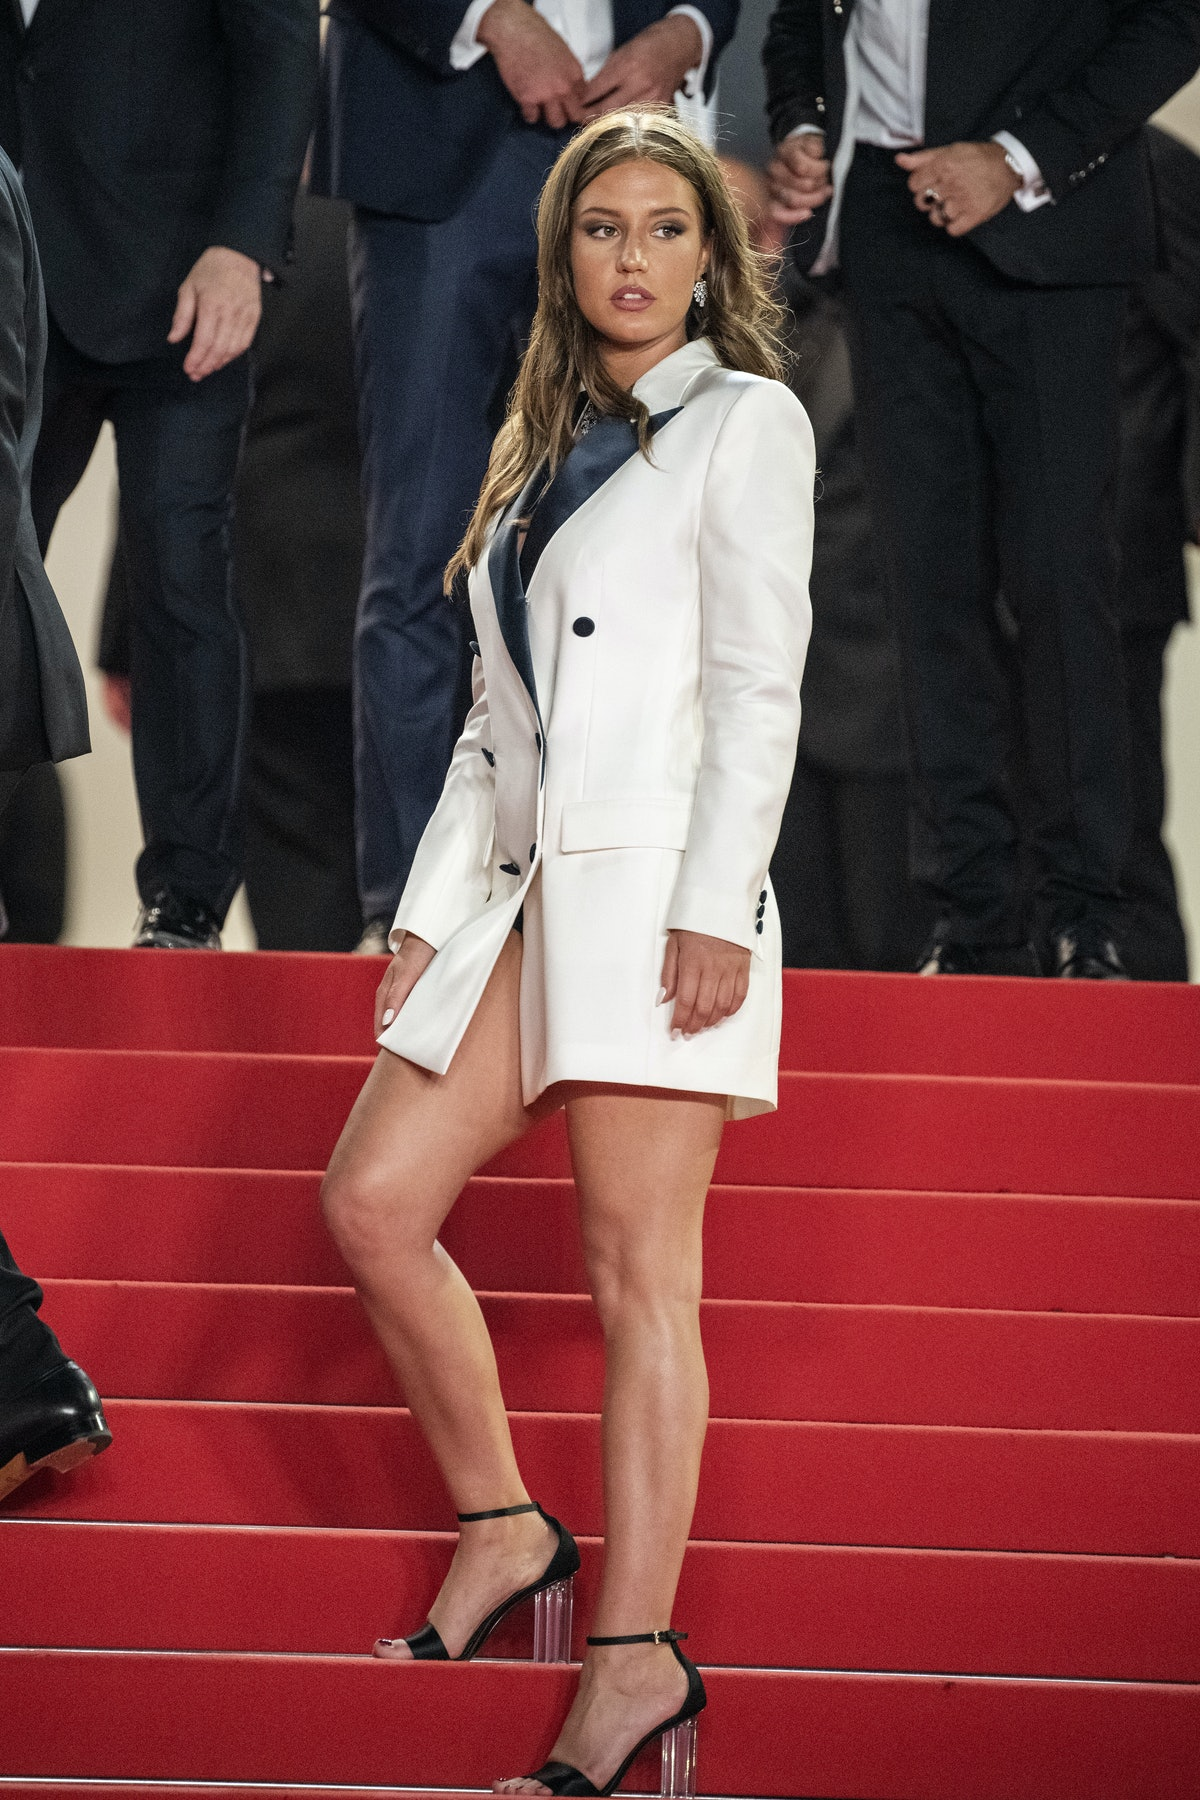 Adèle Exarchopoulos in a white suit and skirt